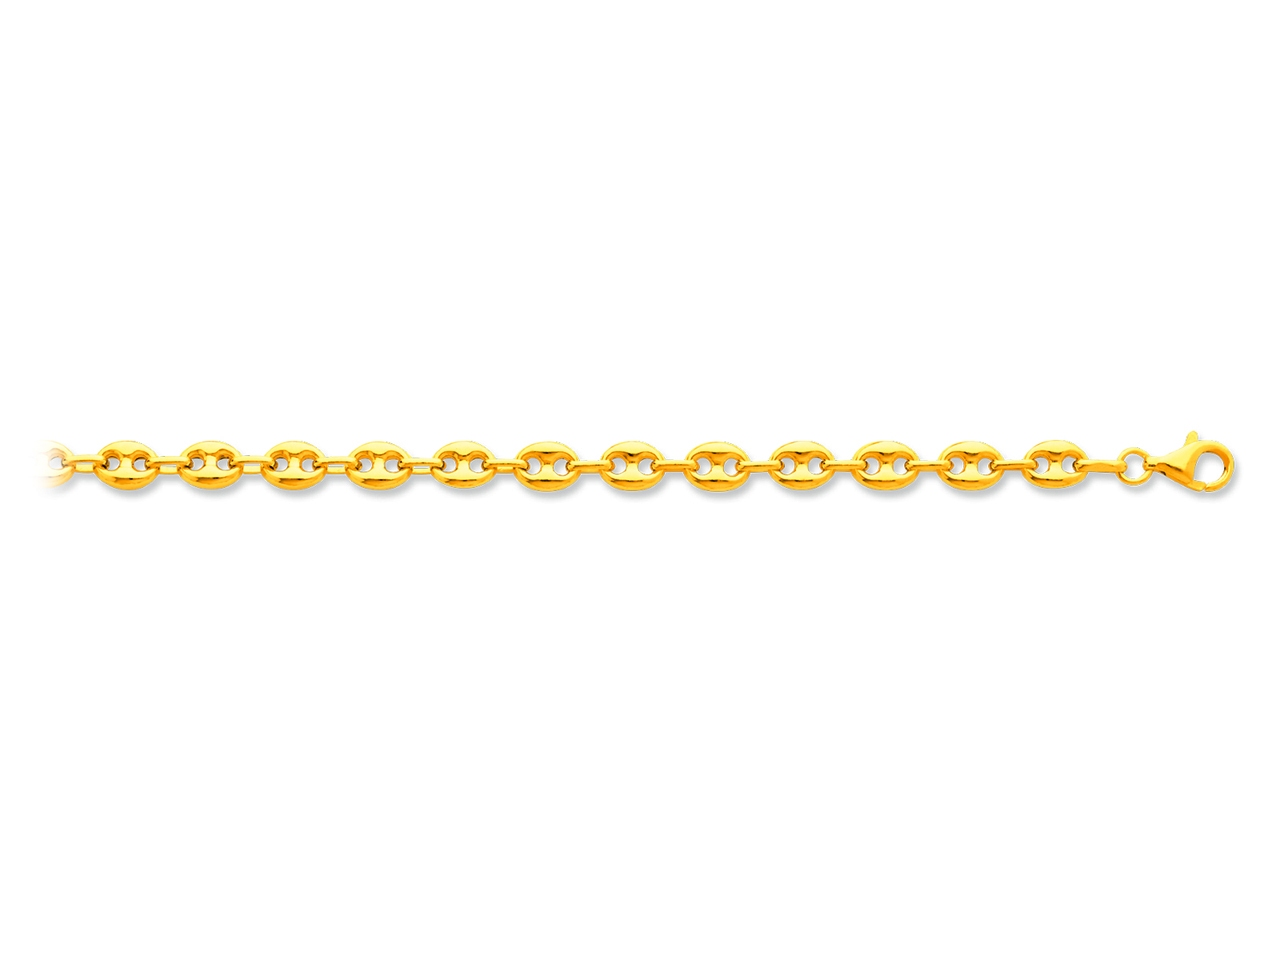 Collier maille grains de cafés creux, Or jaune 18k, 6 mm, 50 cm